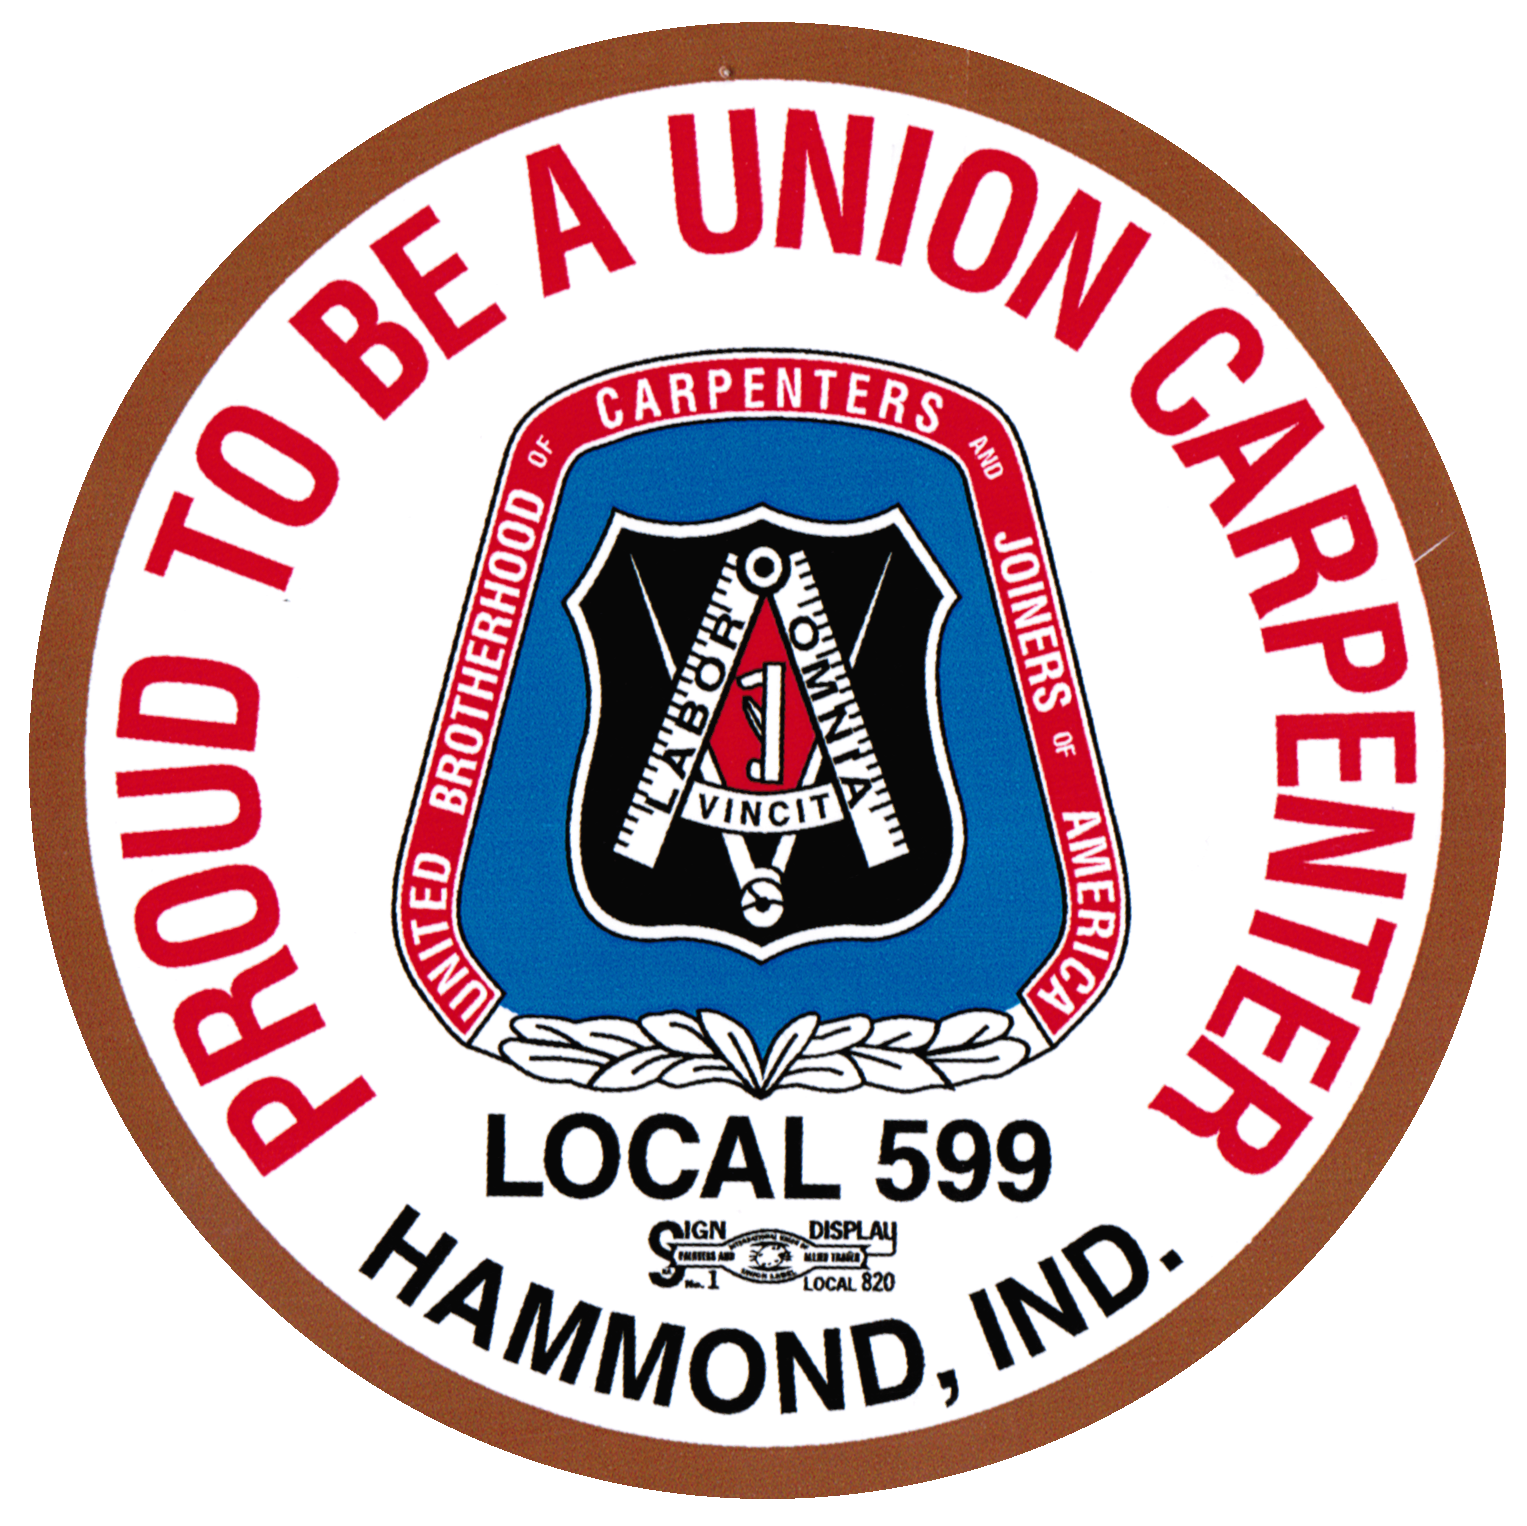 Carpenters Local 599